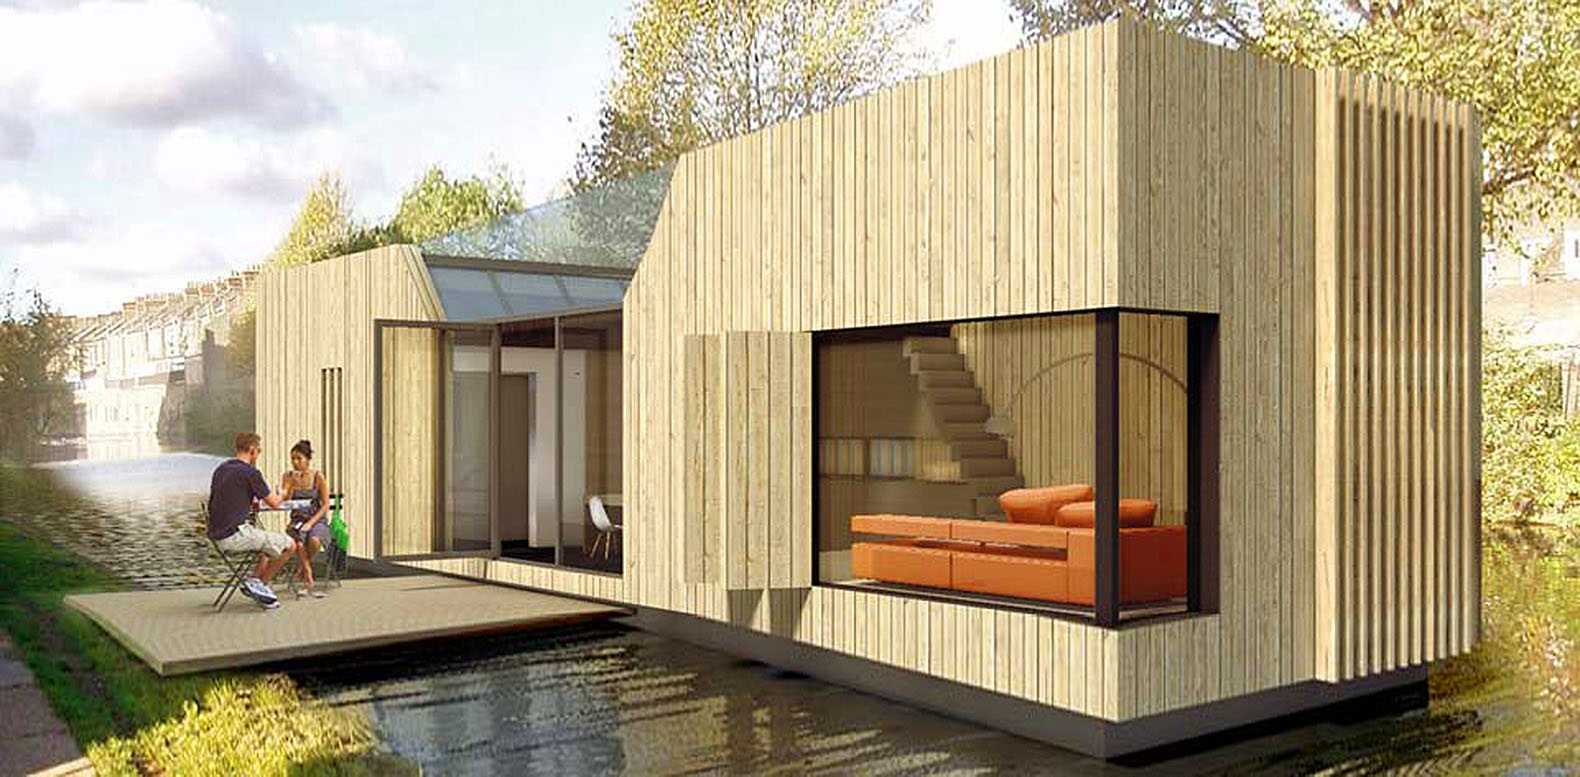 Affordable Green Home - Baca-Architects-Floating-House-1_Fantastic Affordable Green Home - Baca-Architects-Floating-House-1  You Should Have_436852.jpg